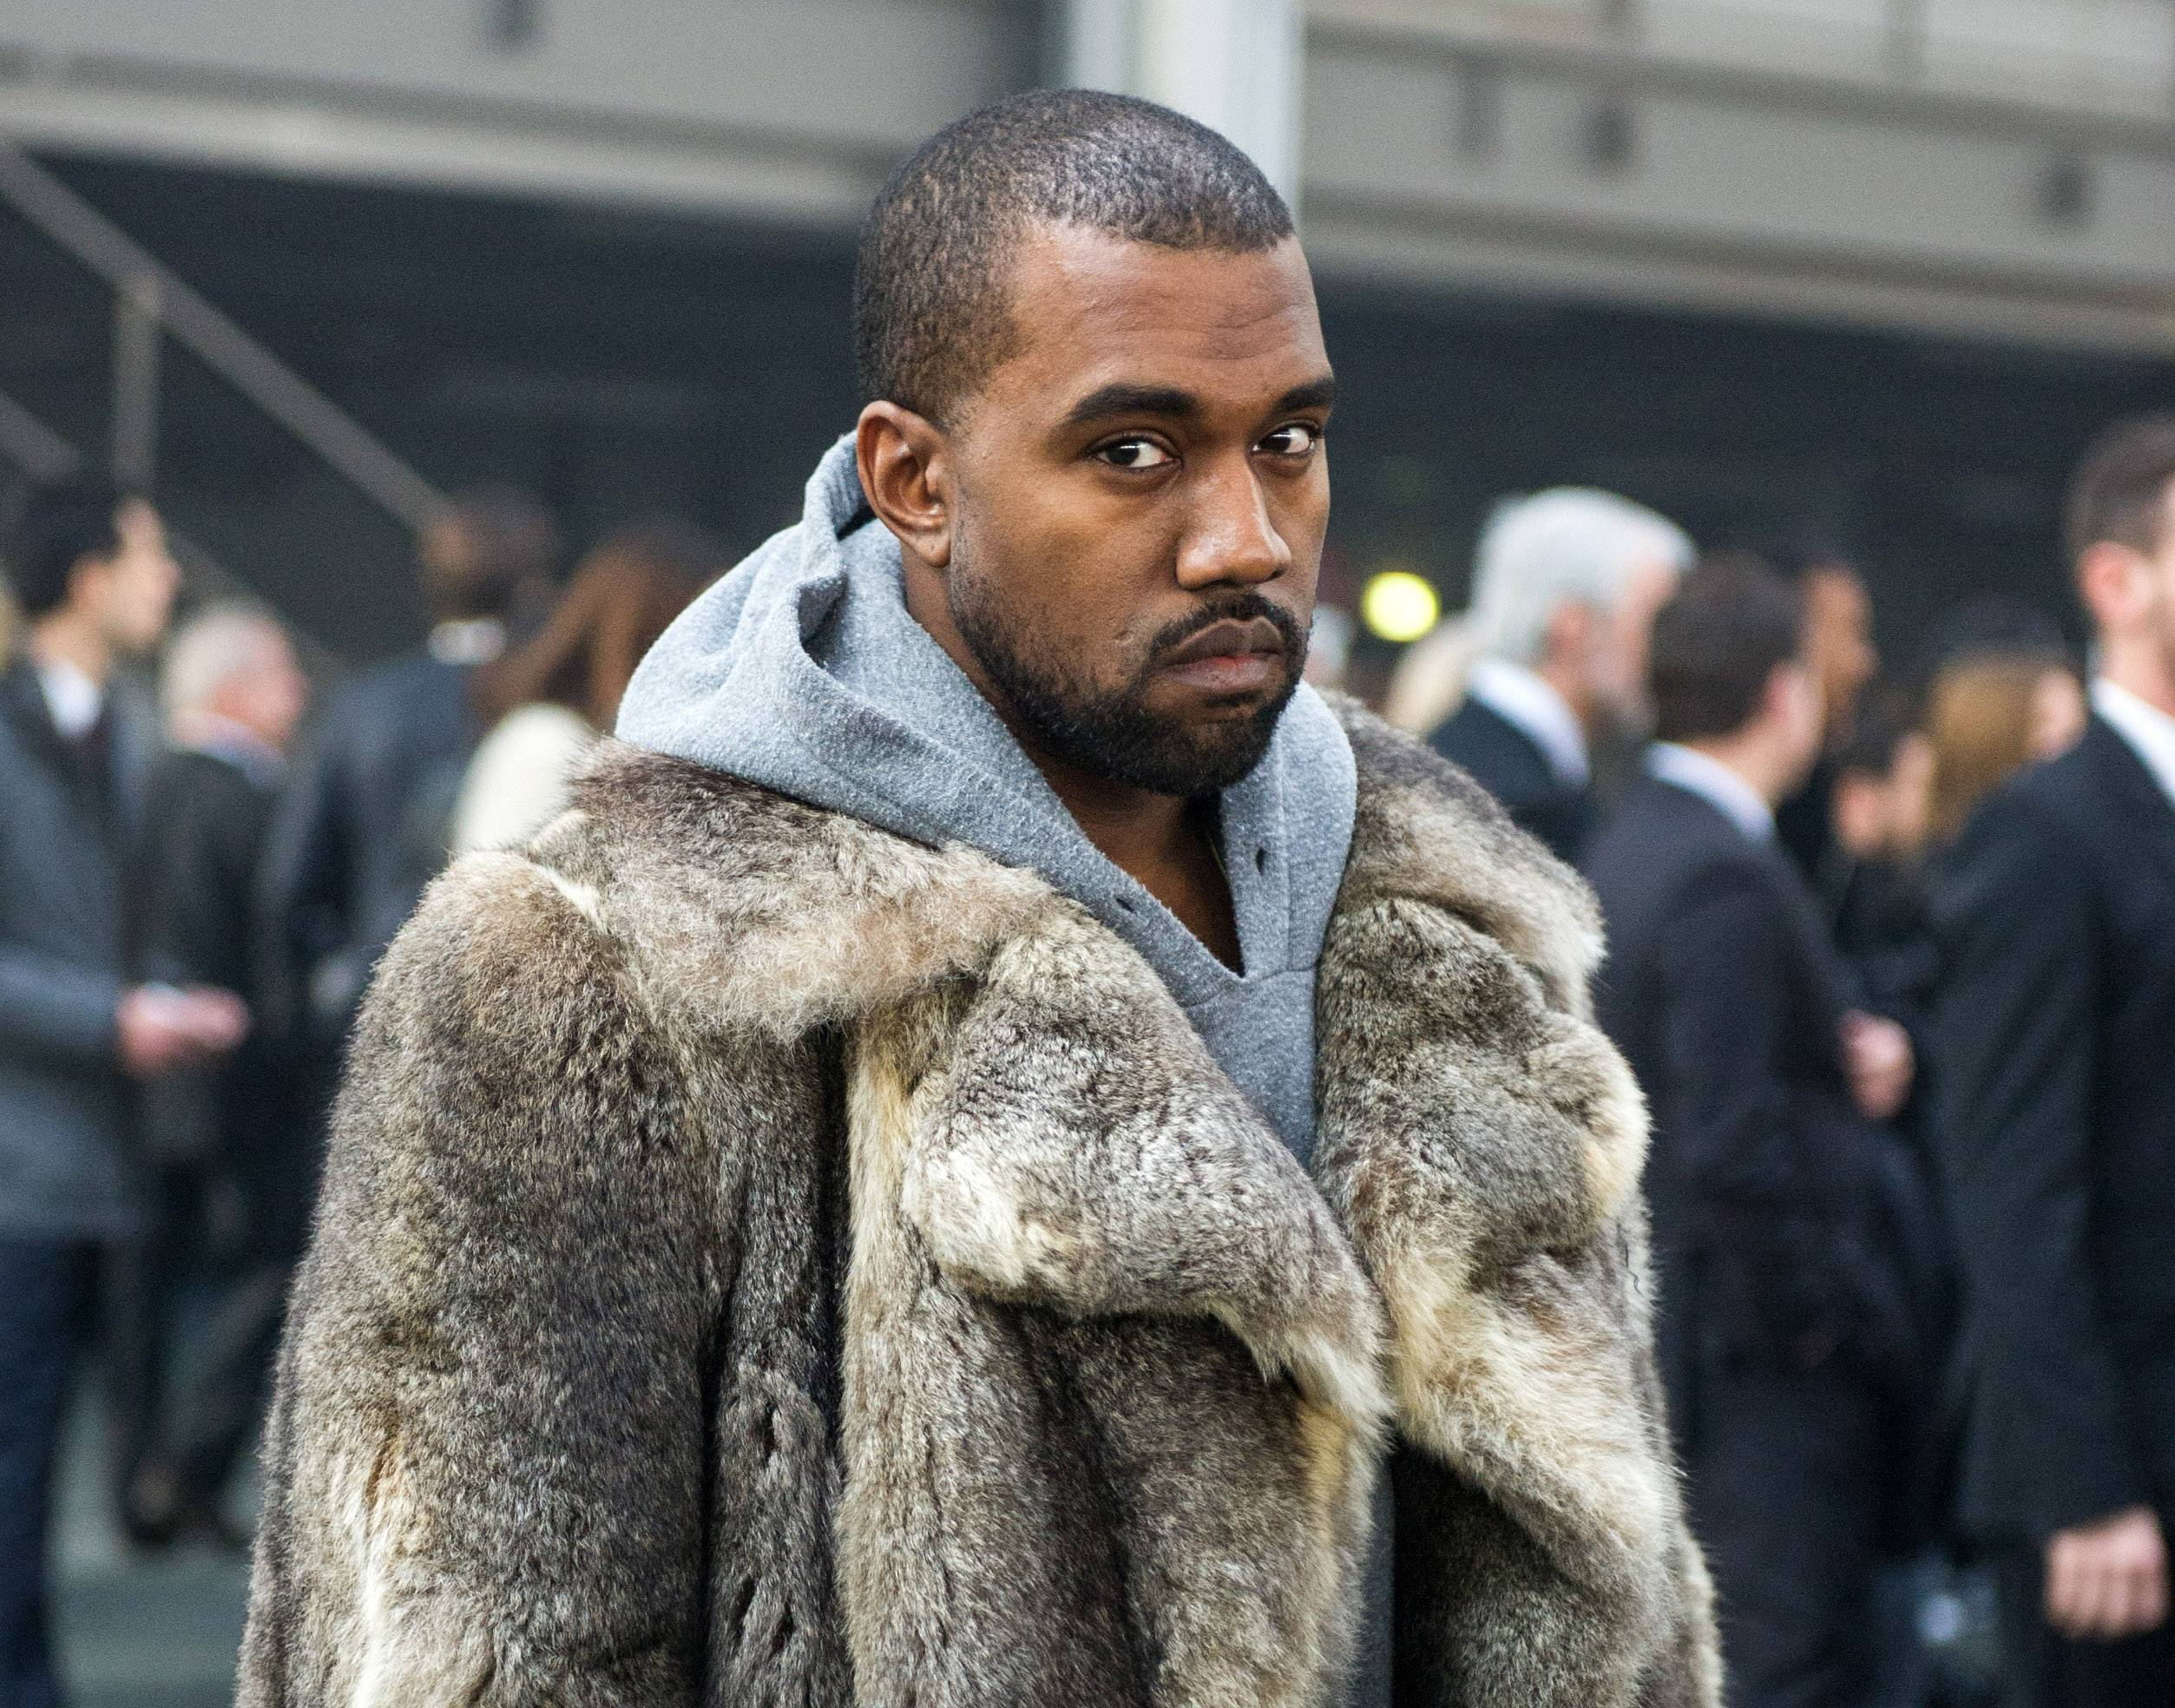 Roc Nation and Kanye West's label announced Monday that Roc Nation will work alongside West's production house, DONDA, on managing the Grammy-winning superstar's music endeavors.